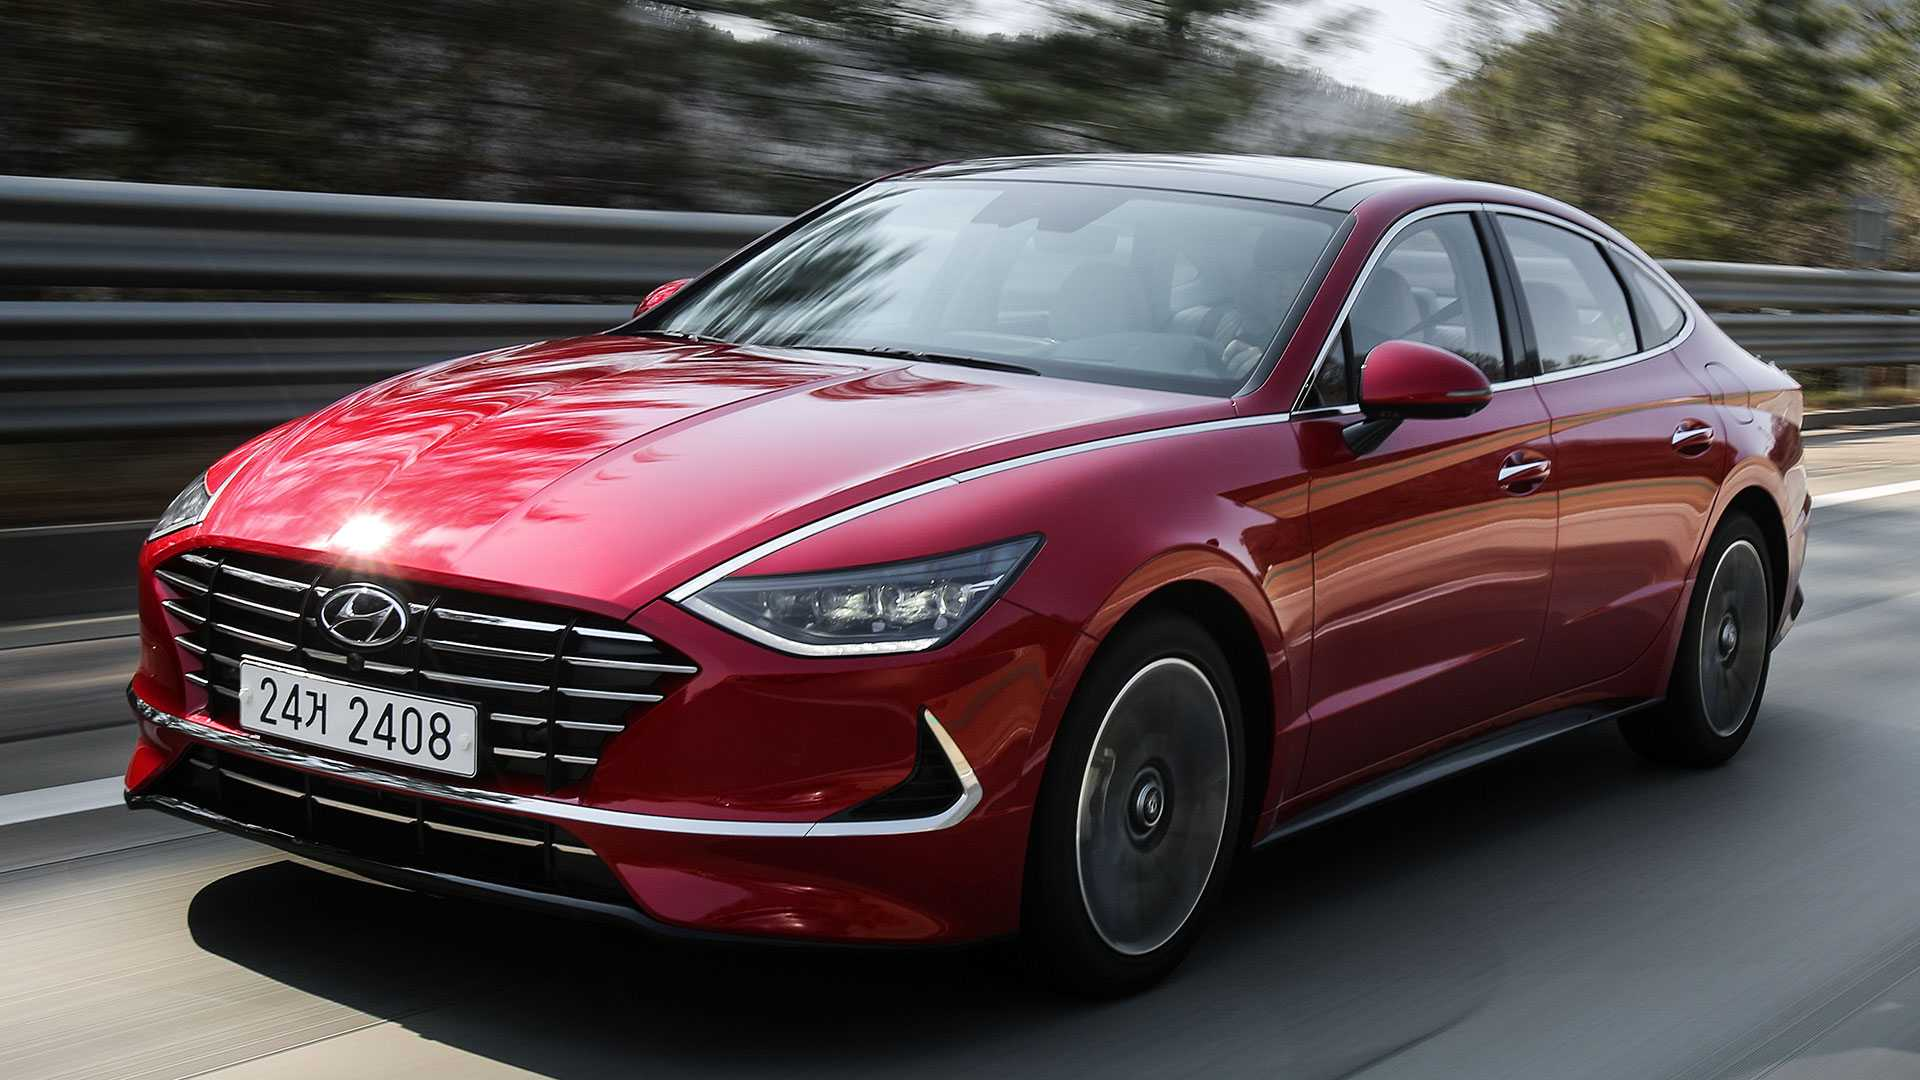 41 Best 2020 Hyundai Sonata Review Review And Release Date